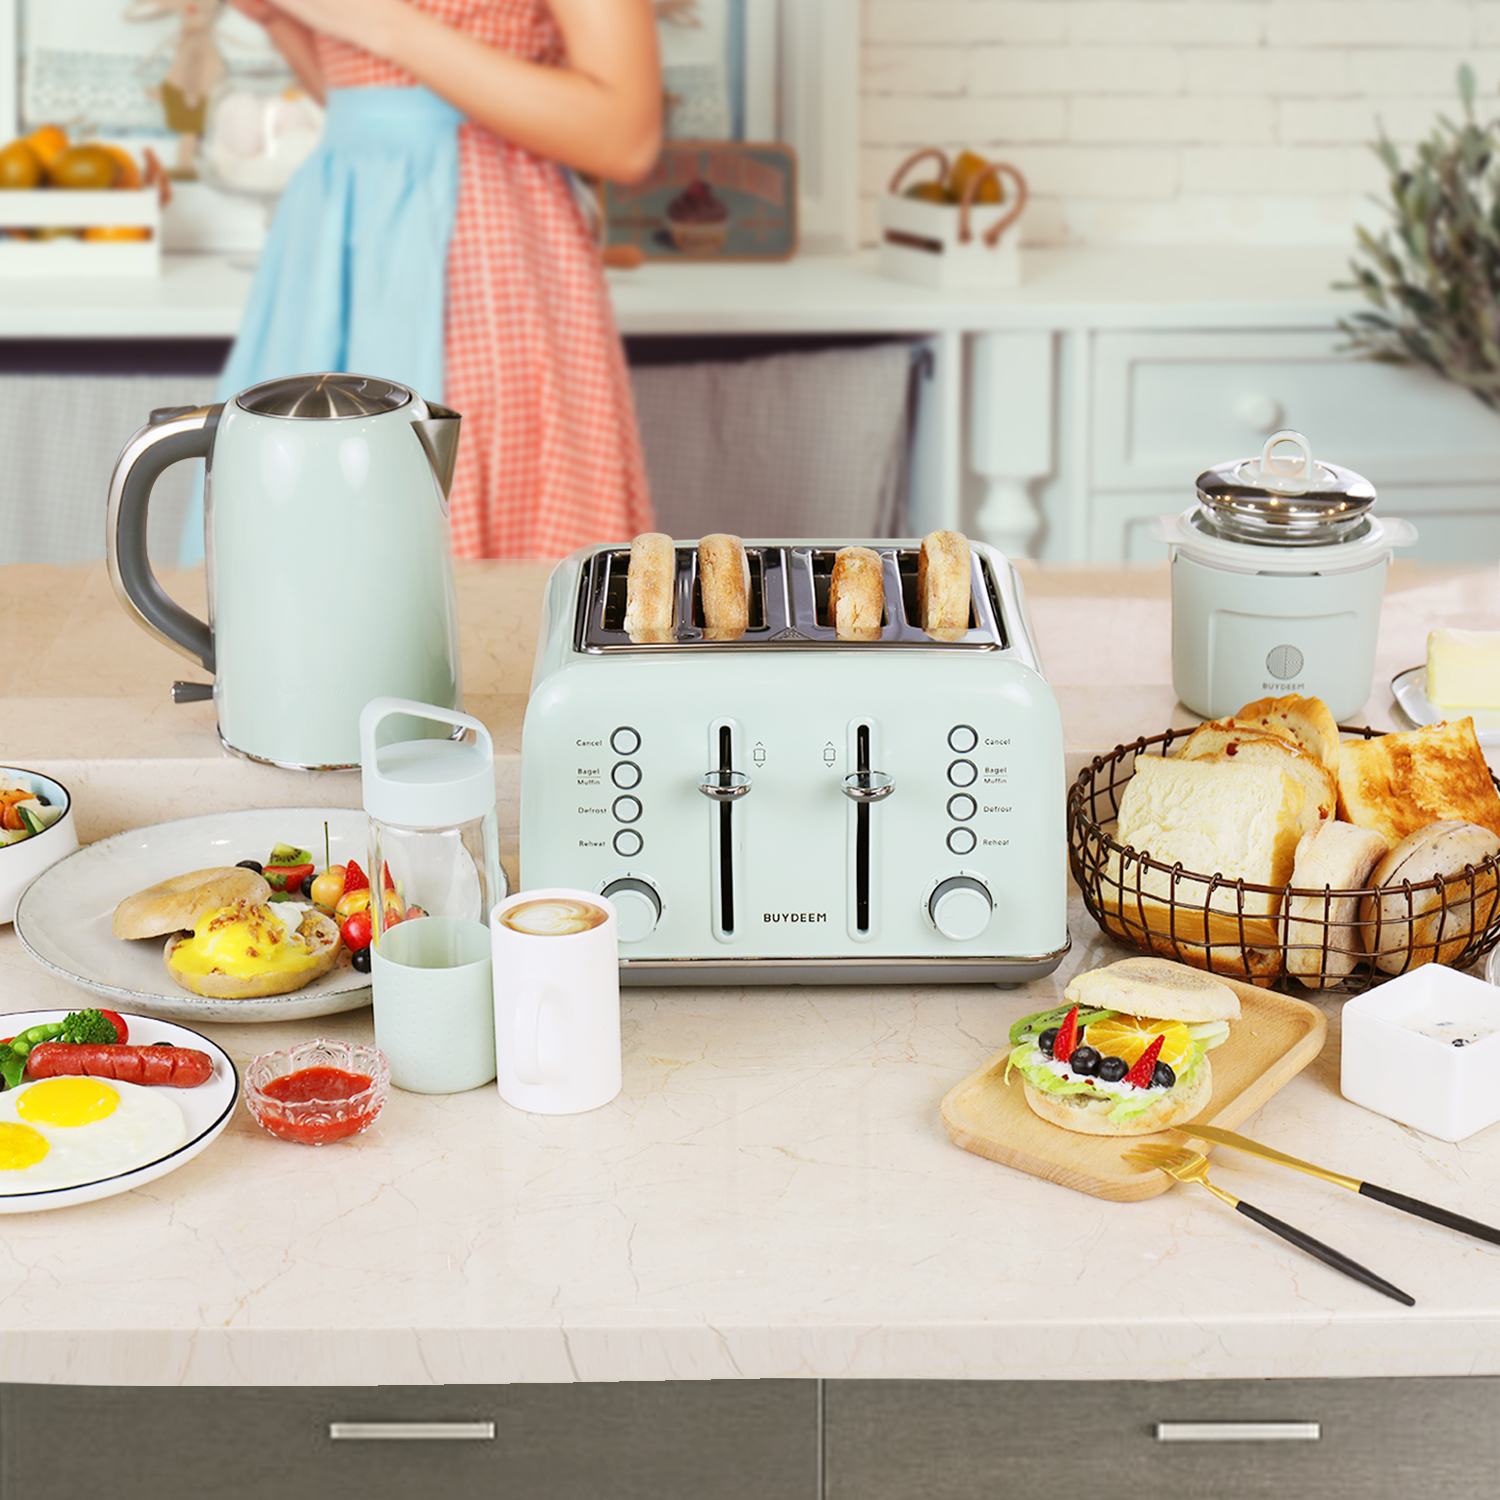 Extra-wide 4-slice toaster